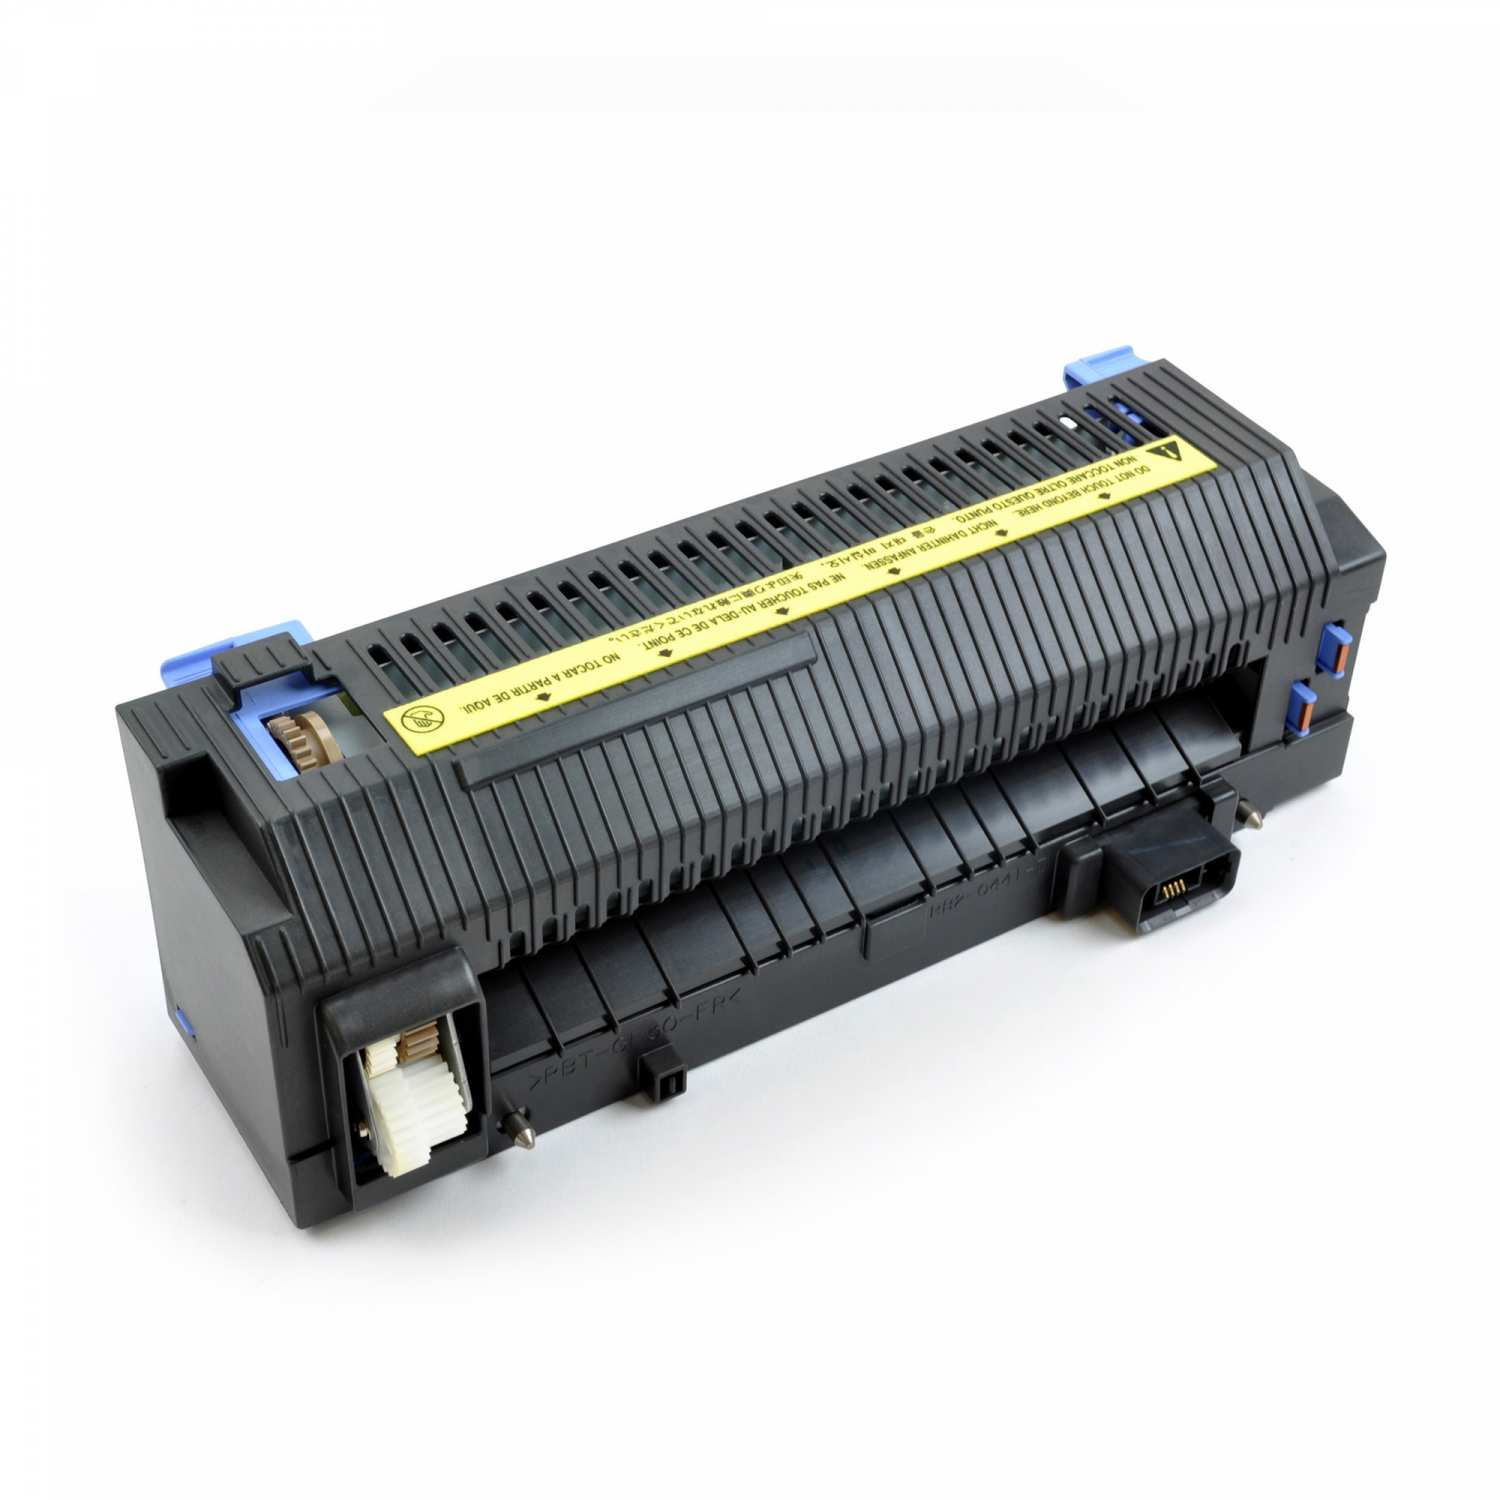 RG5-5155-000 Fuser Assembly (220V) Purchase for HP Color LaserJet 4500